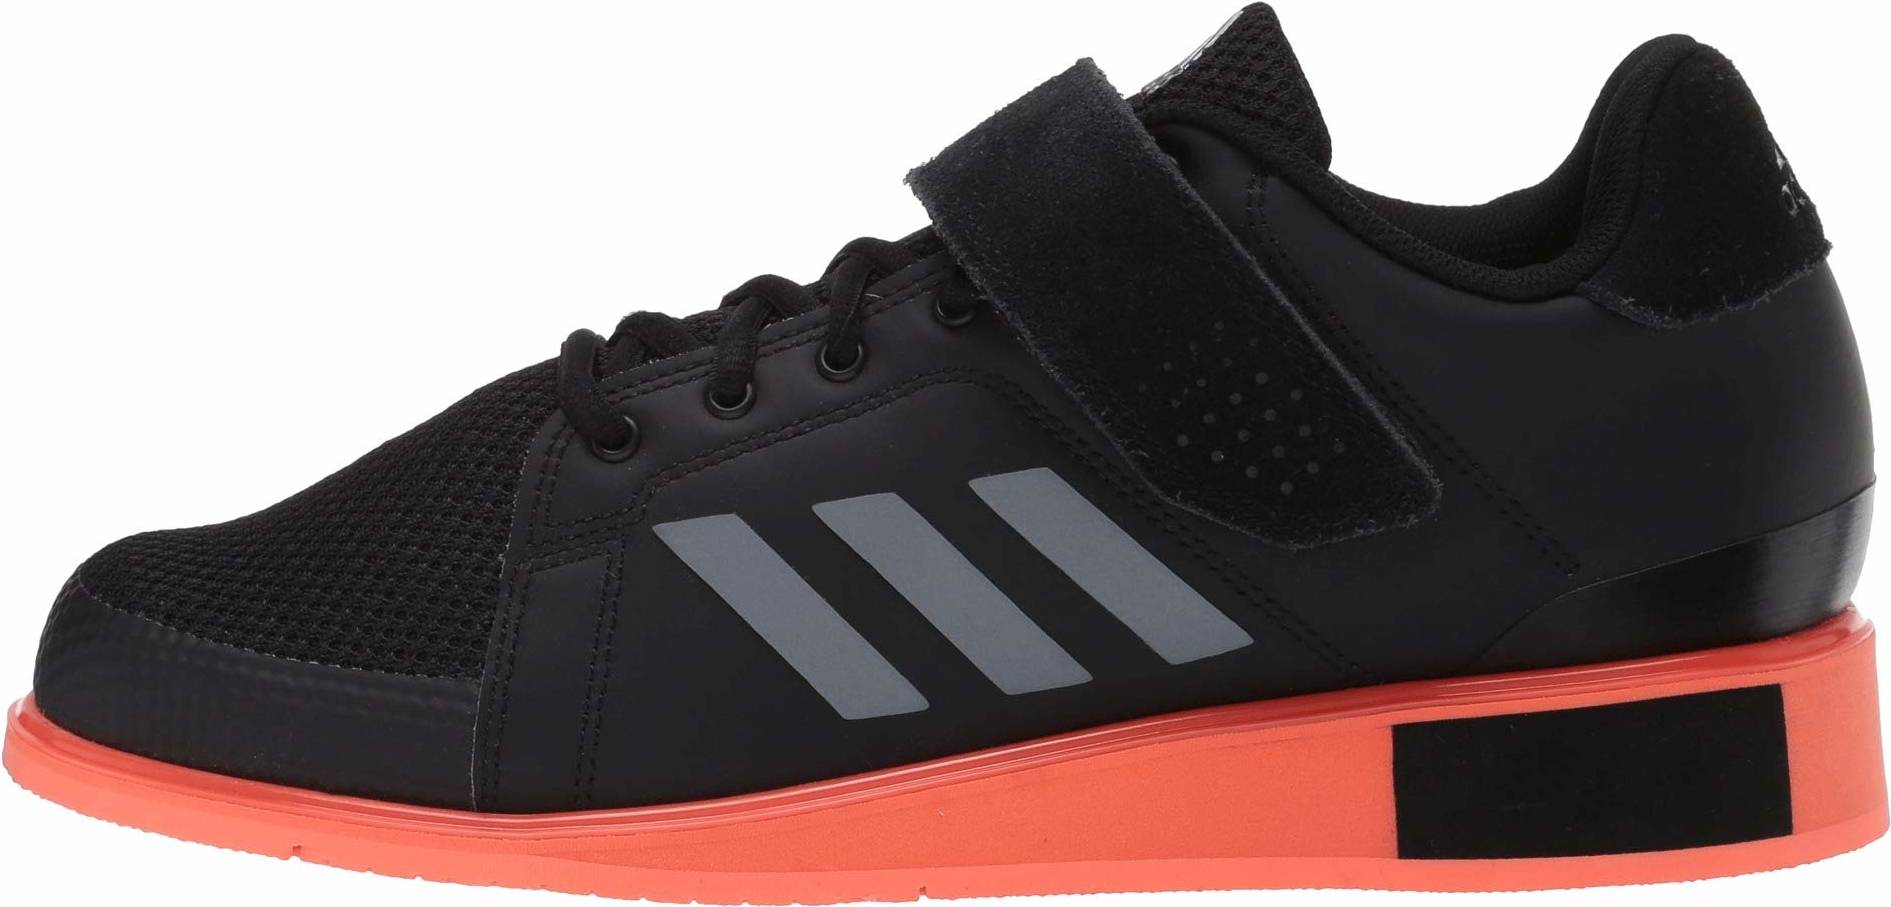 País de origen Playa conductor  Only £62 + Review of Adidas Power Perfect 3 | RunRepeat